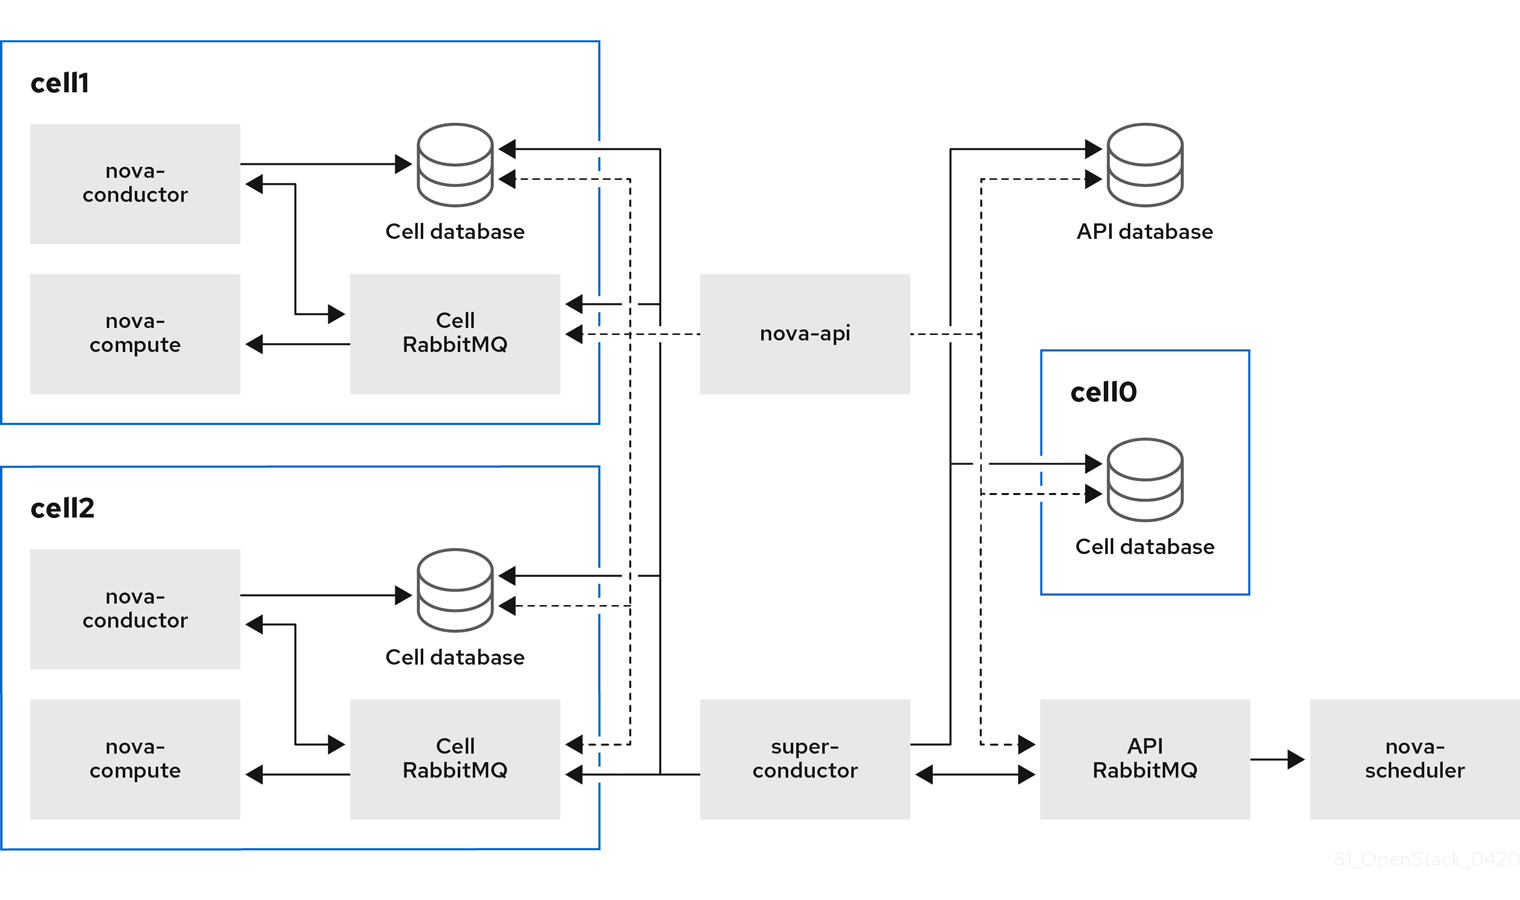 Multi-cell deployment architecture